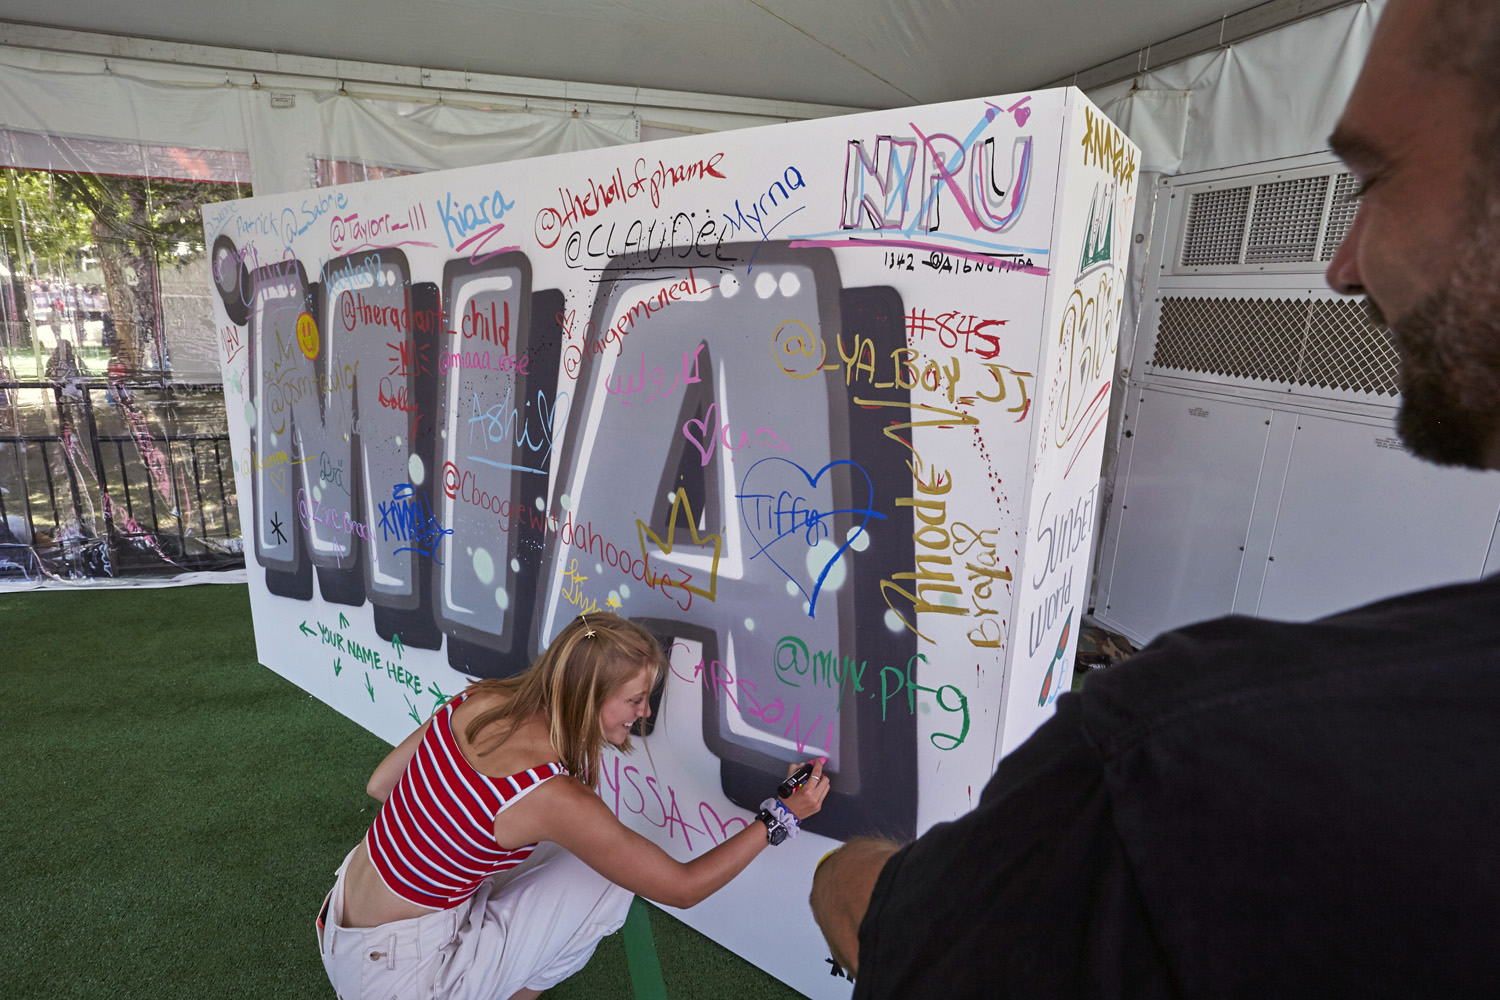 Philly Music Festival Activation Graffiti Wall